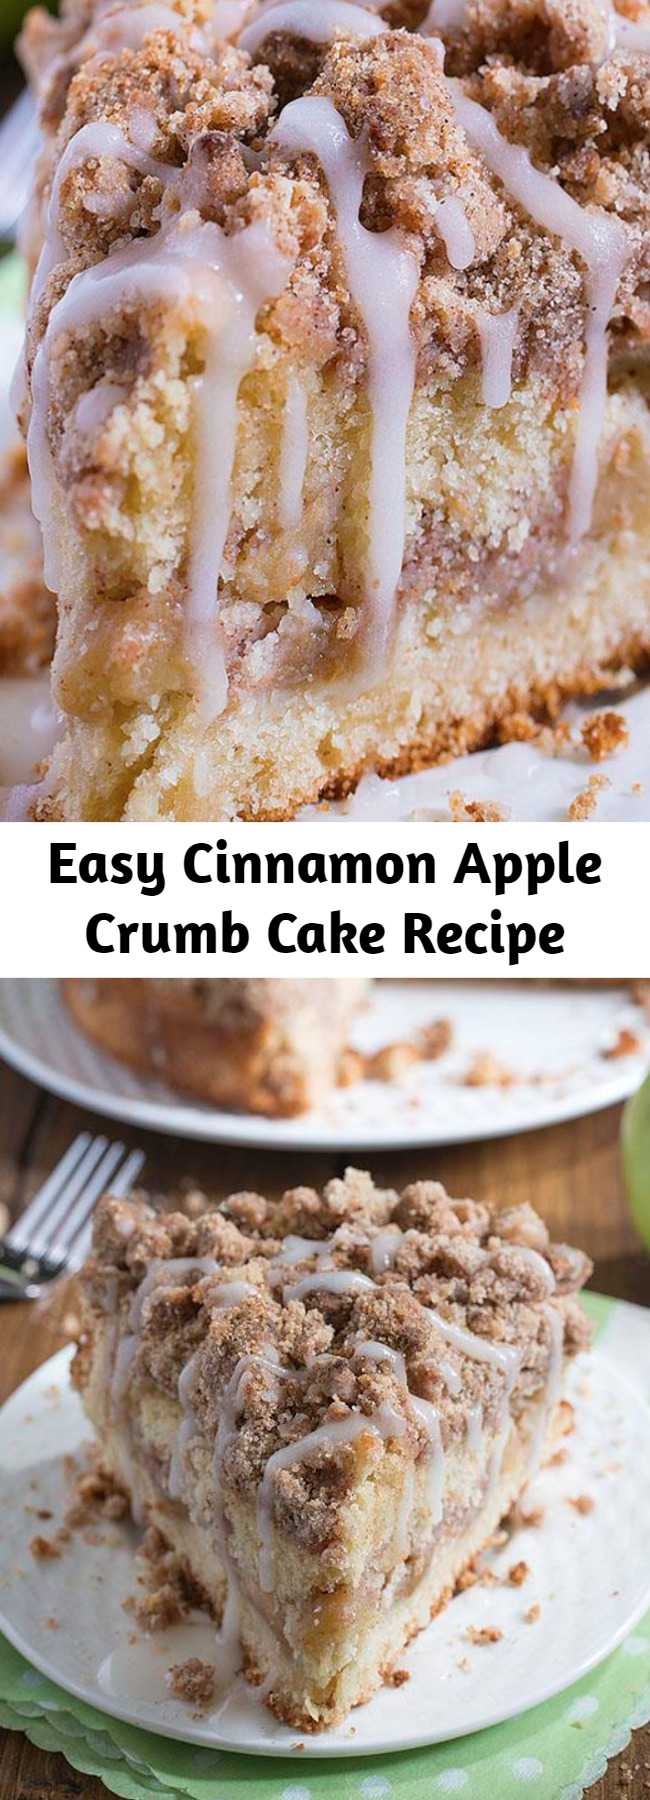 Easy Cinnamon Apple Crumb Cake Recipe - Are you ready for fall baking? Cinnamon Apple Crumb Cake is the perfect dessert for crisp weather coming up.